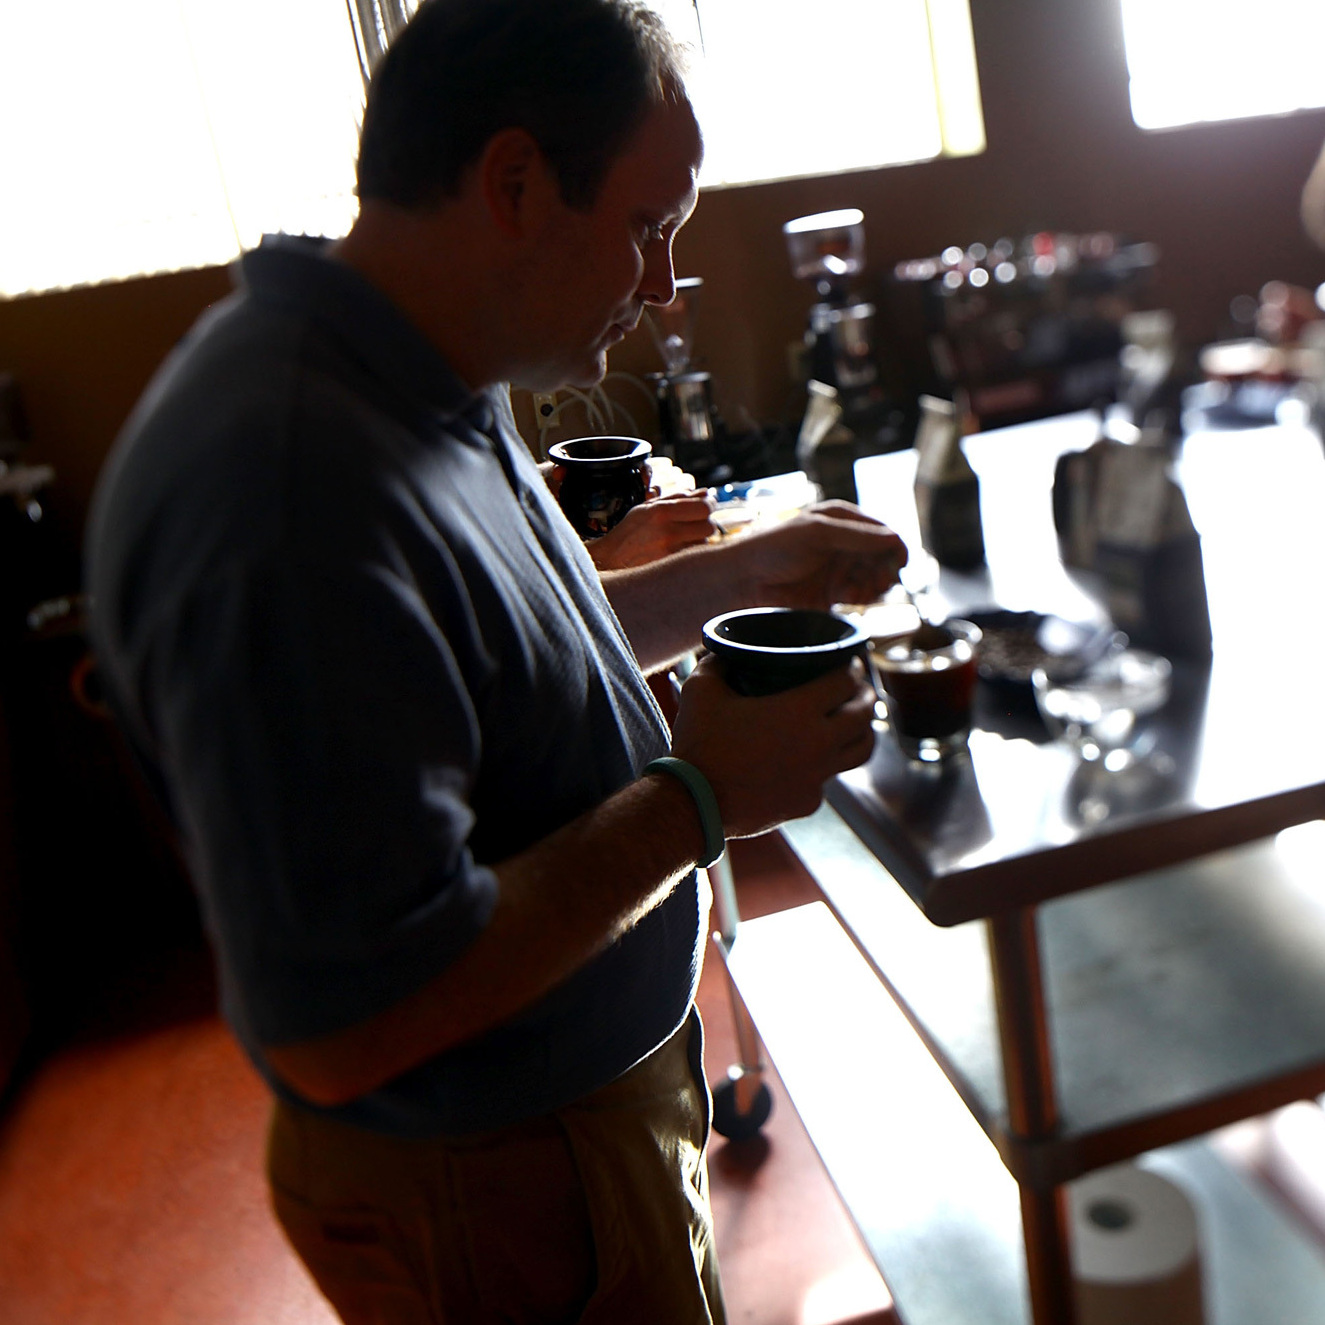 Mark Stell of Portland Roasting samples coffee from his Guatemalan grower.